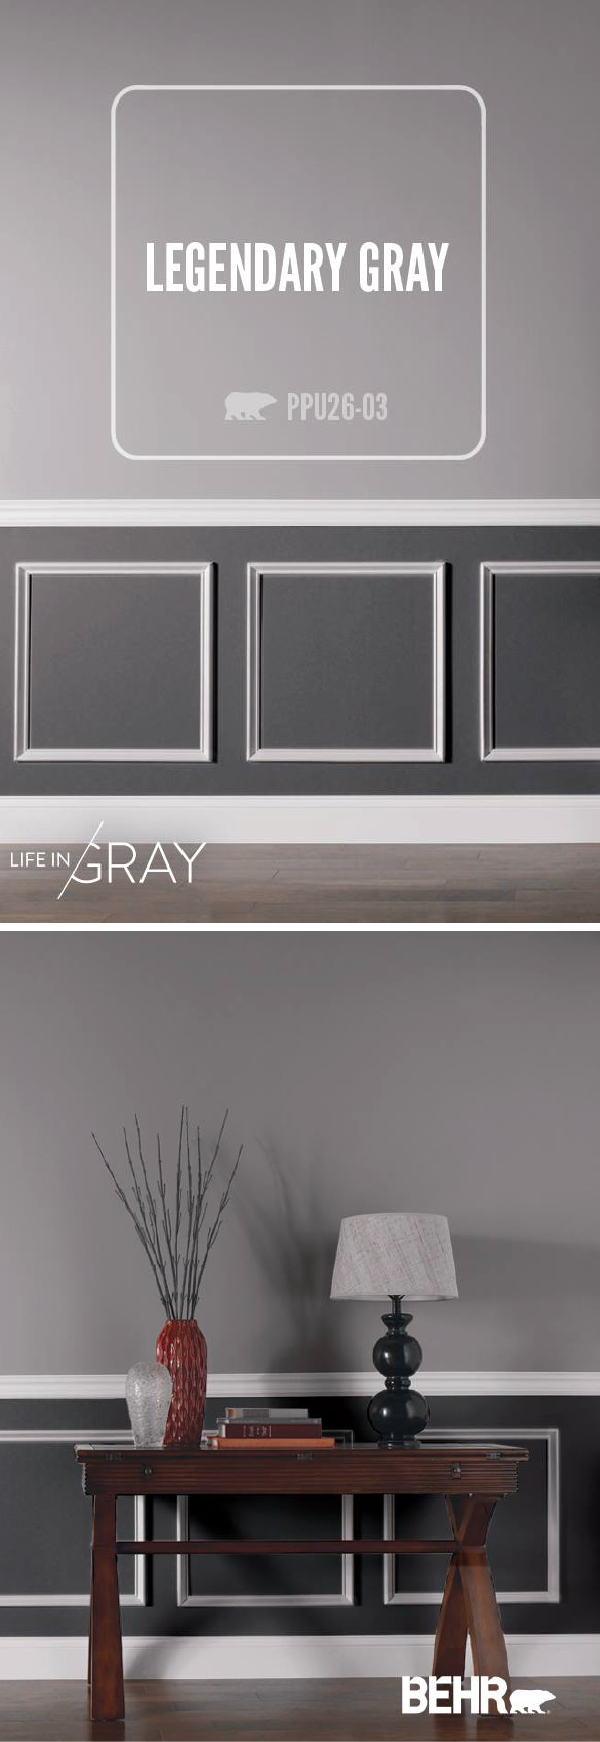 40 Grey Living Rooms That Help Your Lounge Look: Gray Is The Perfect Neutral. It Can Be Dramatic And Moody